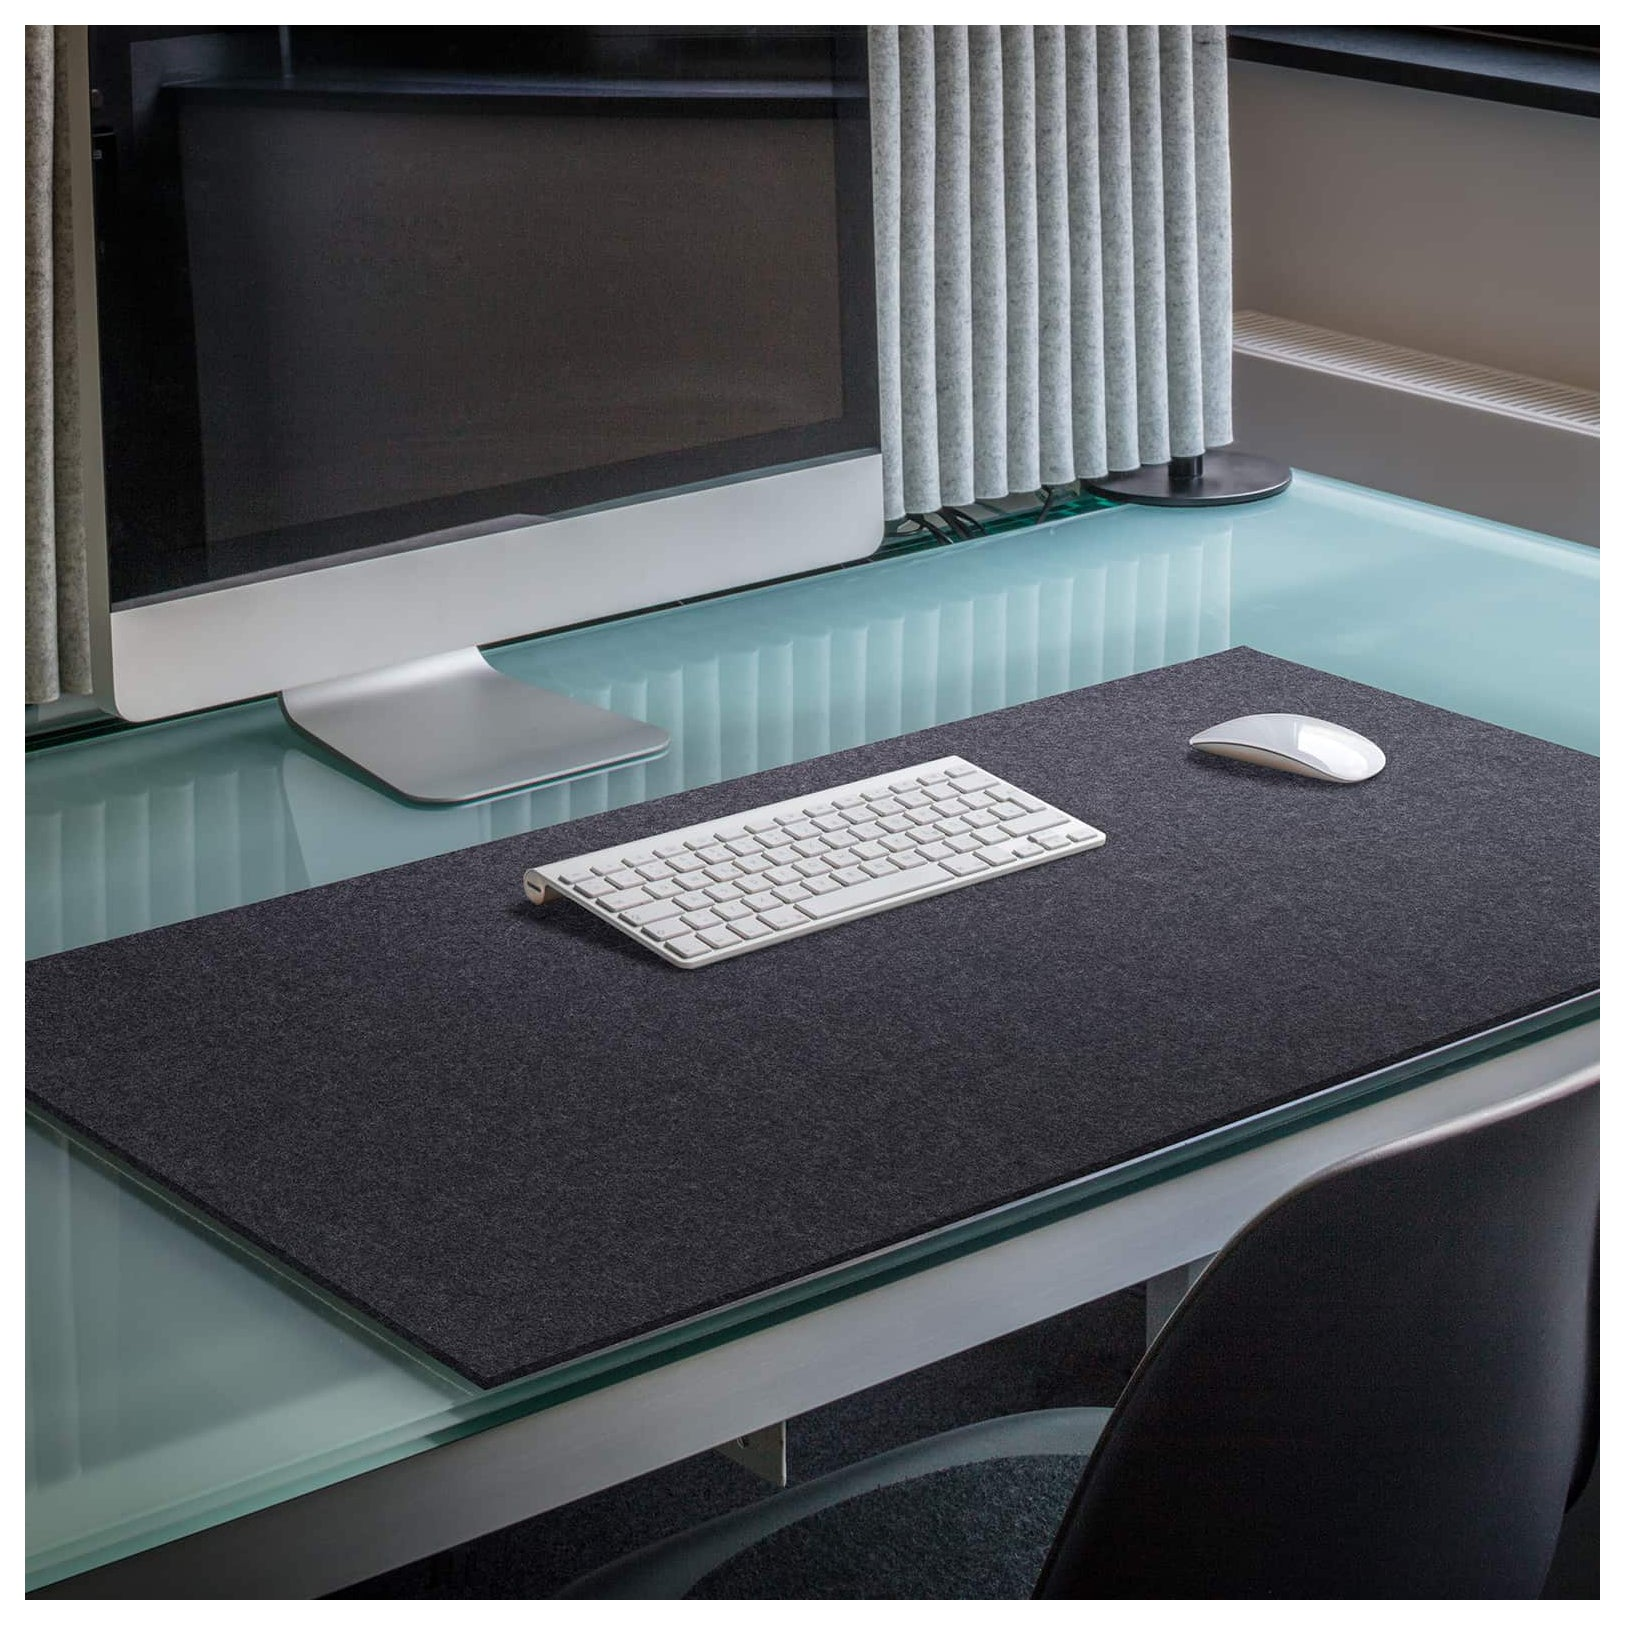 Rectangular Felt Desk Pad in Graphite by Hey-Sign 300109008 looking at Lifestyle Image